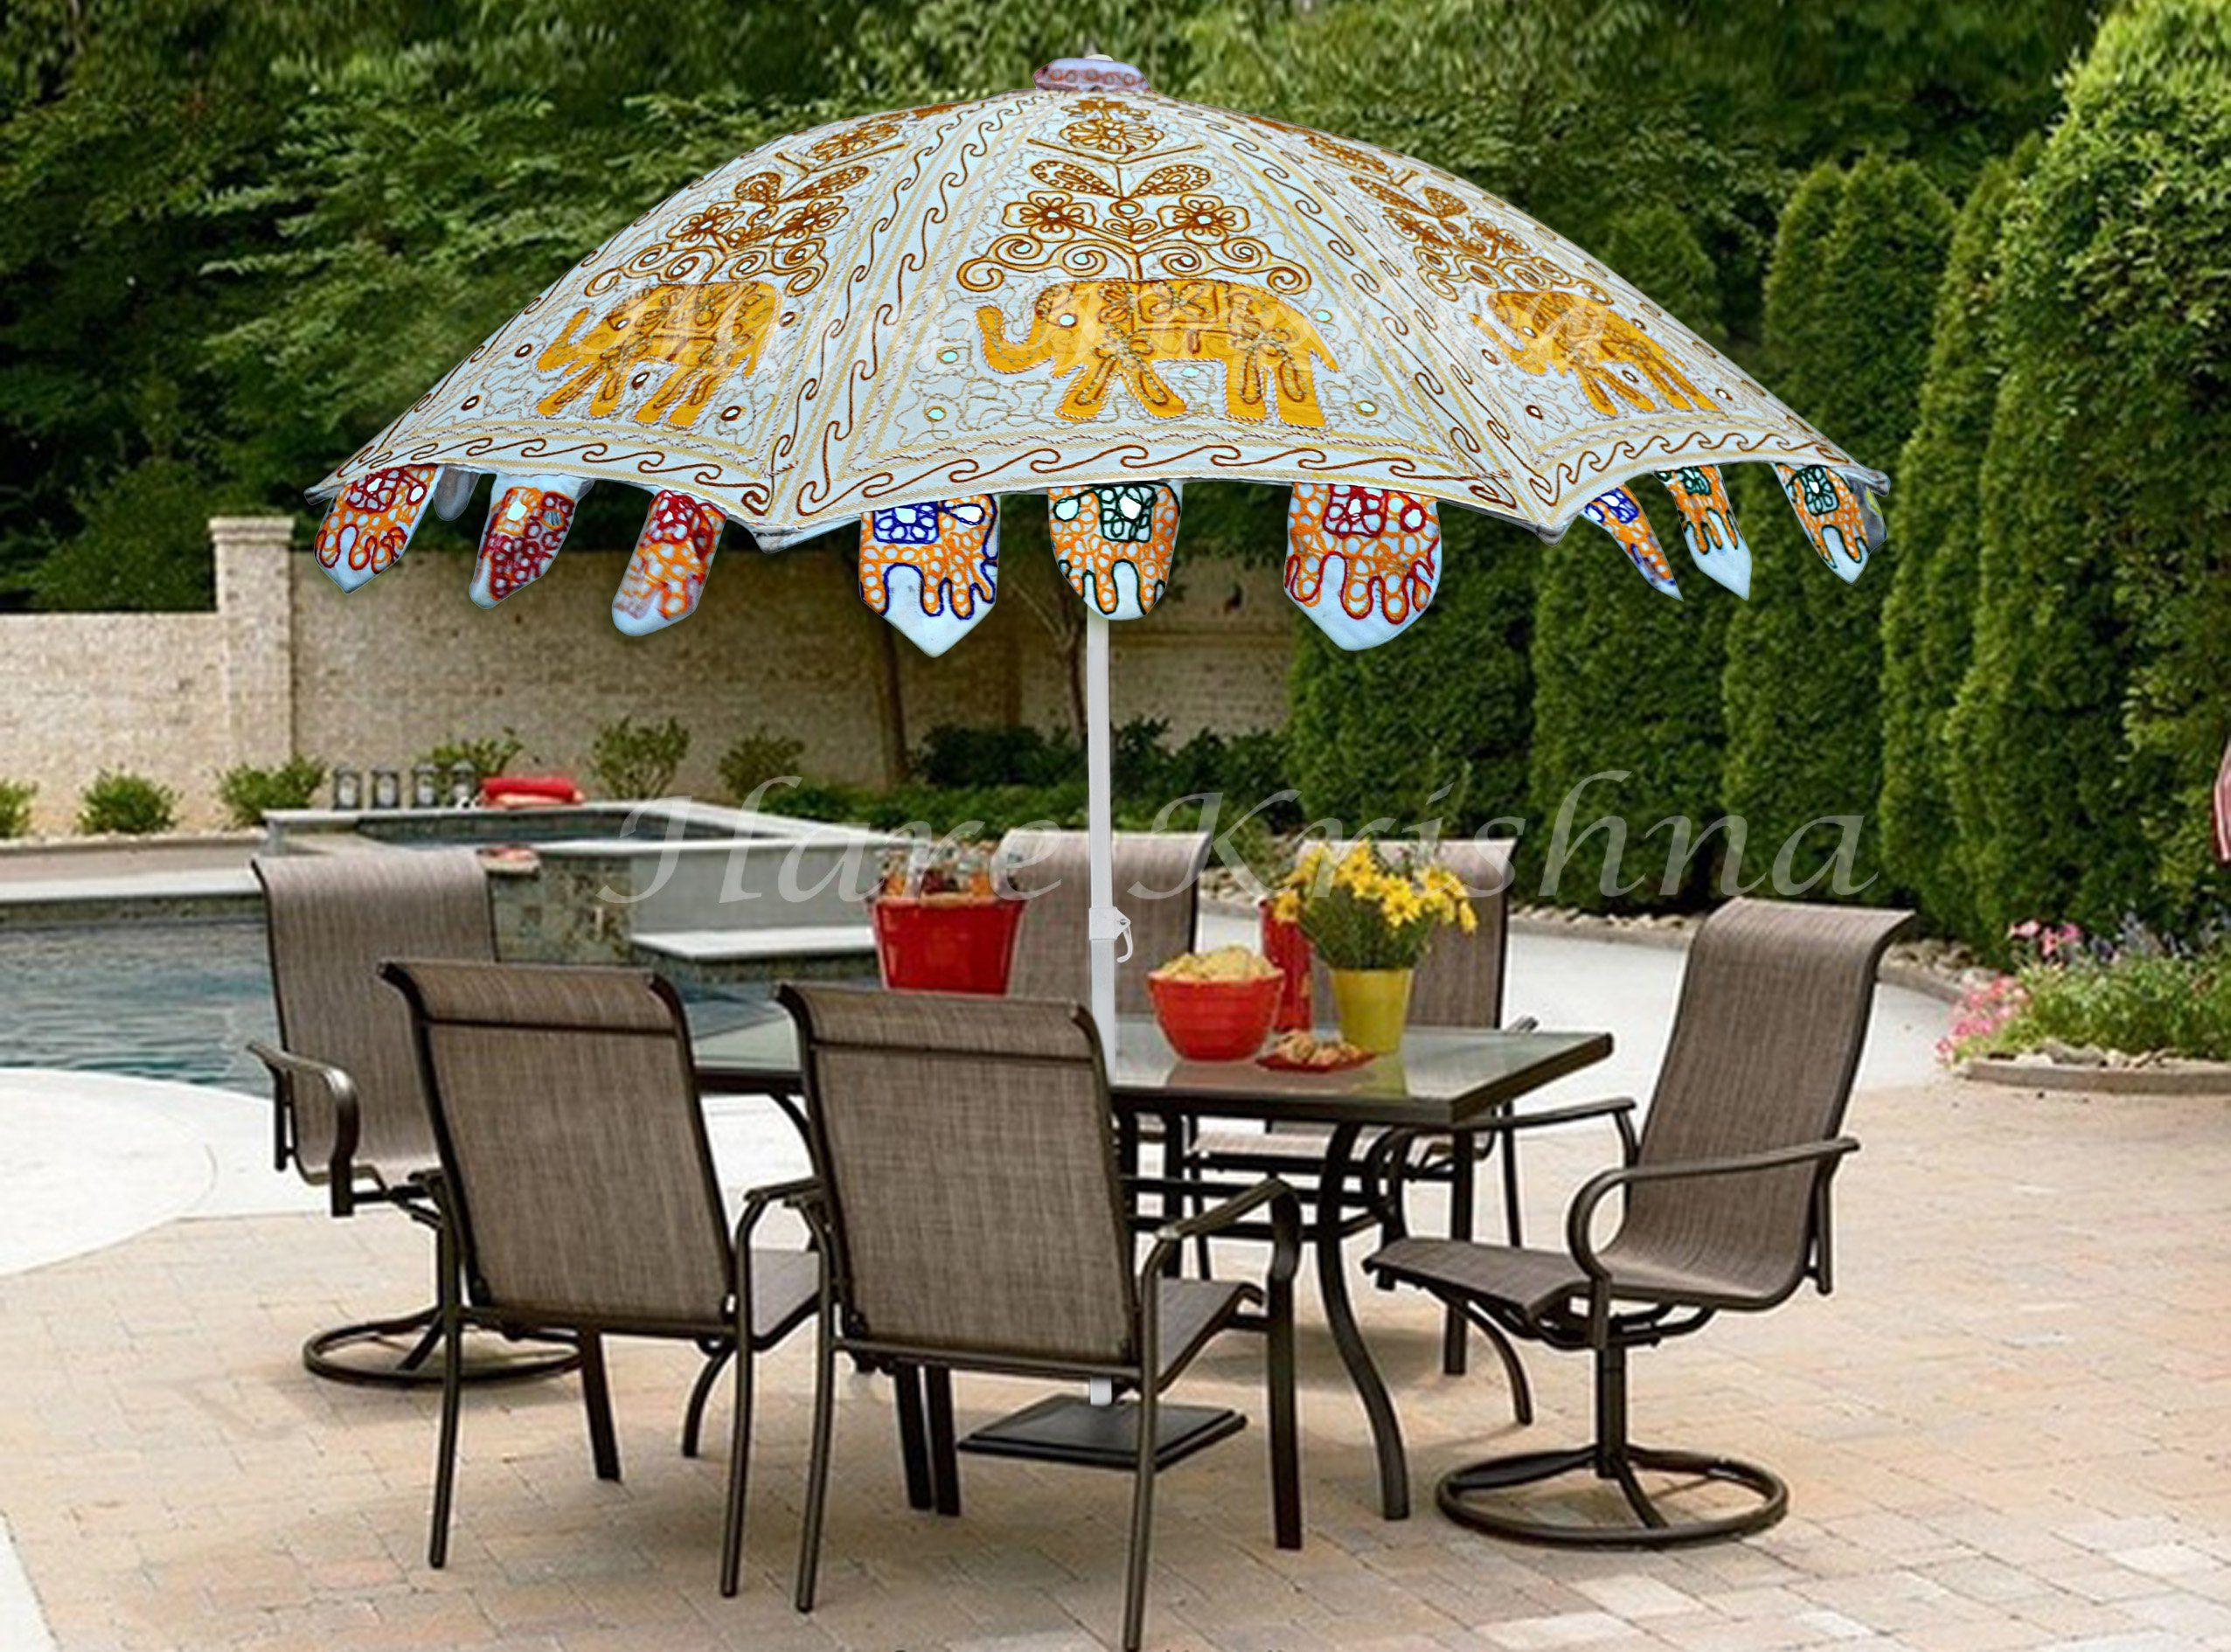 hare krishna large garden parasol round outdoor resort umbrella spring haven accent table inches occasional chairs next sei mirage mirrored stainless steel ceiling curtain rod